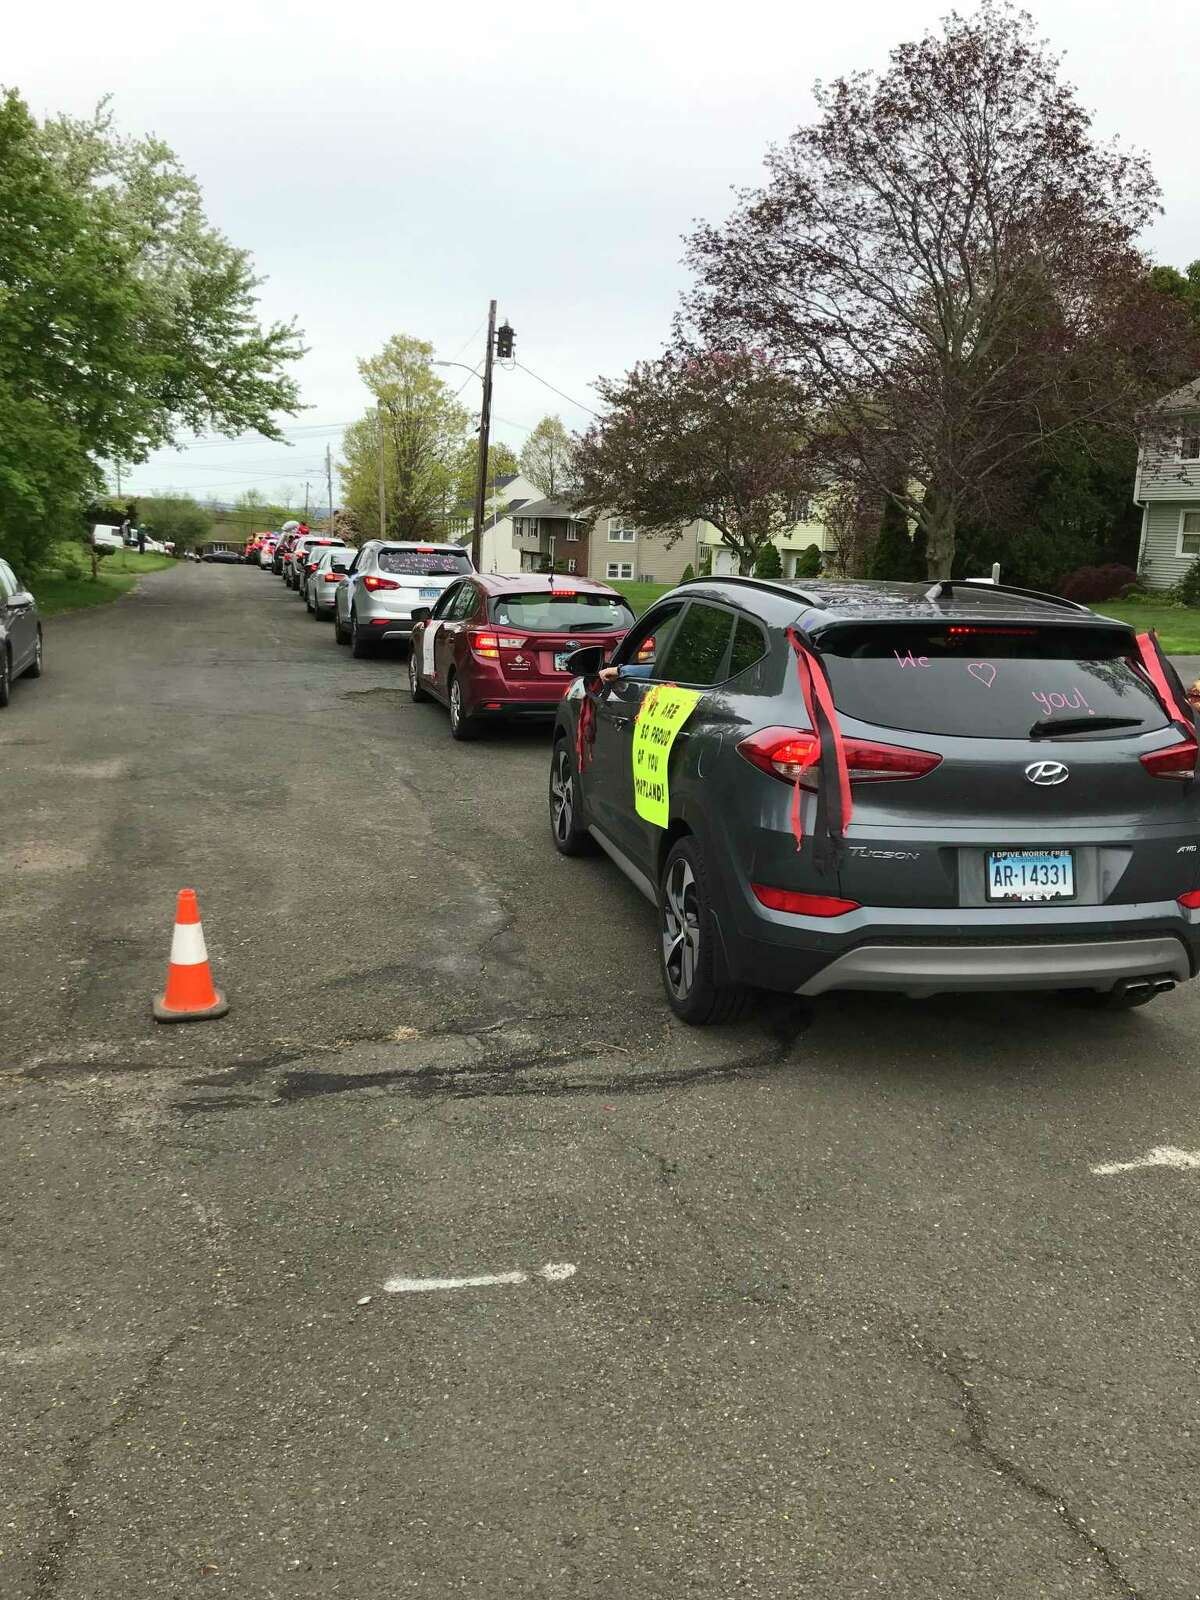 Escorted by police and trailed by two fire engines, dozens upon dozens of Portland teachers criss-crossed their way through town as part of an effort to renew their links to the students they last saw on March 12.